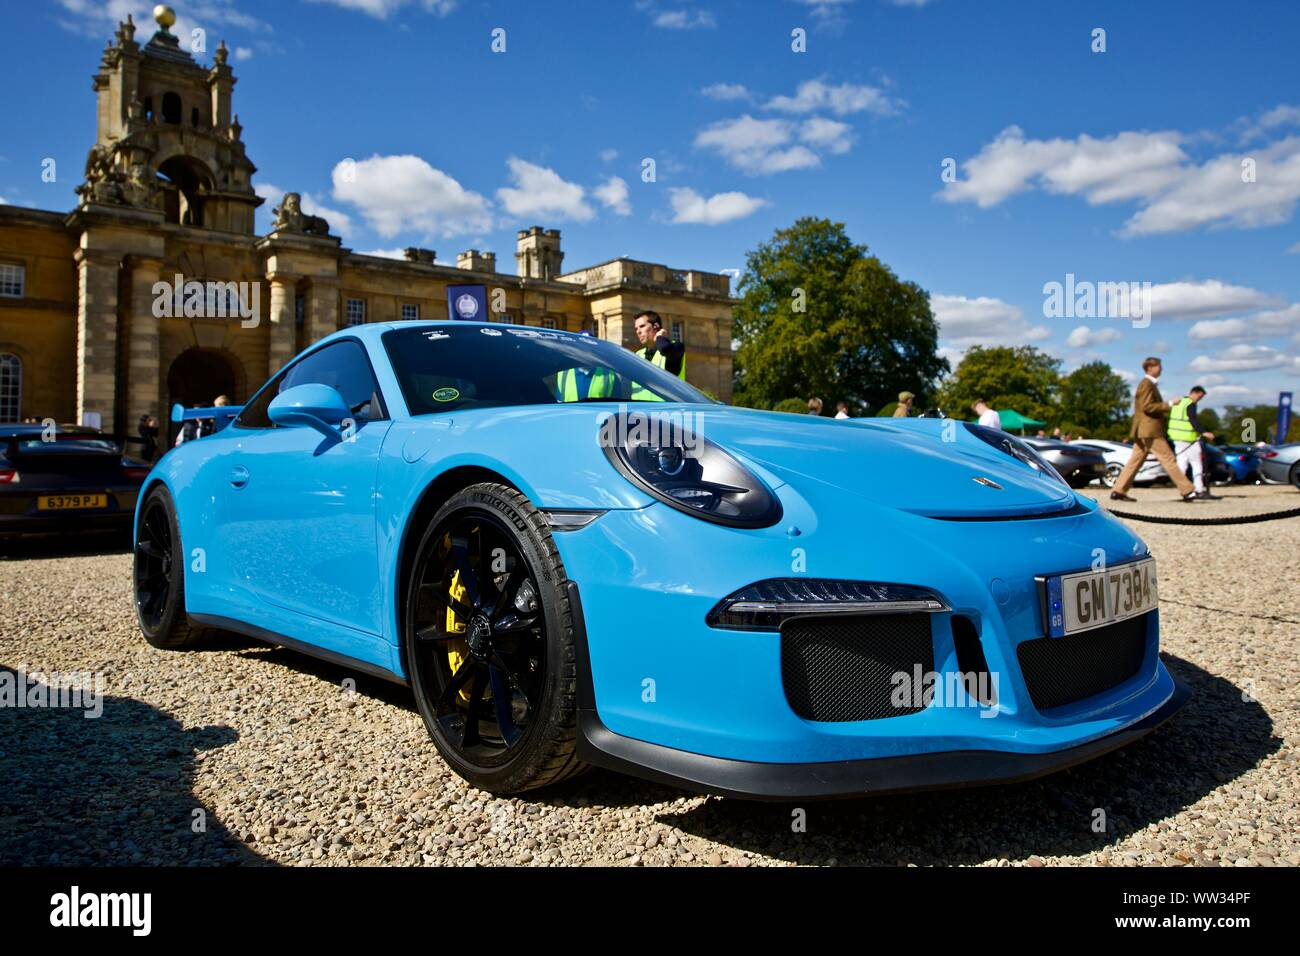 Porsche 911 GT3 RS in miami blue on show at the Concours D